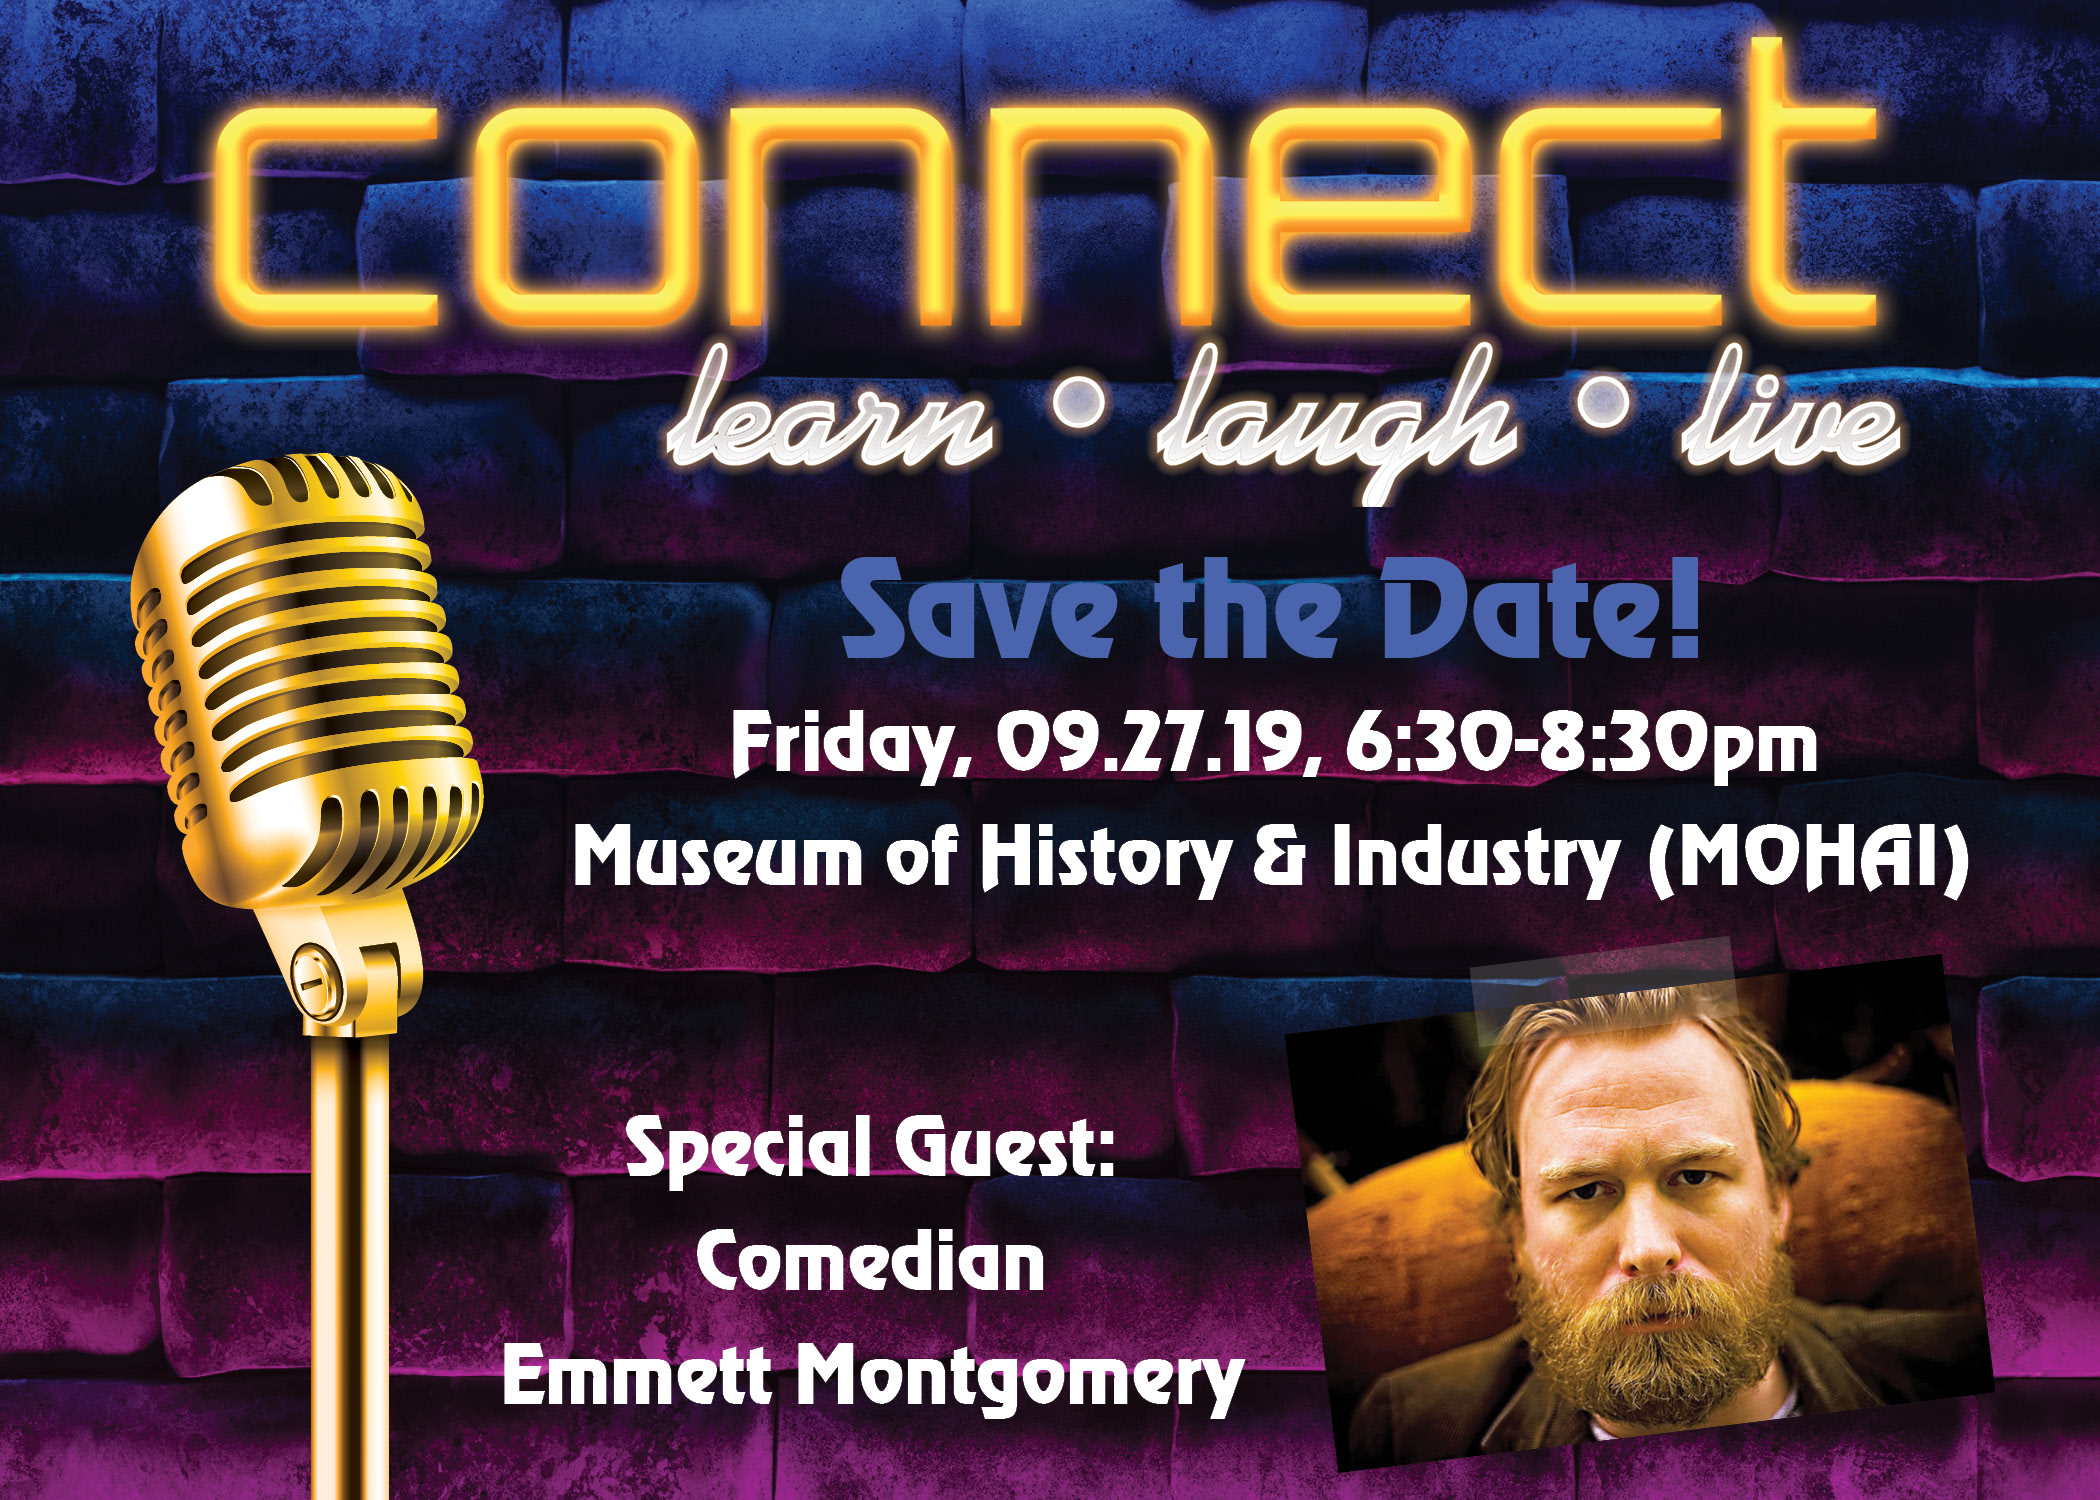 connect, save the date: friday 9.27.19 6:30-8:30pm with special guest comedian Emmett Montgomery